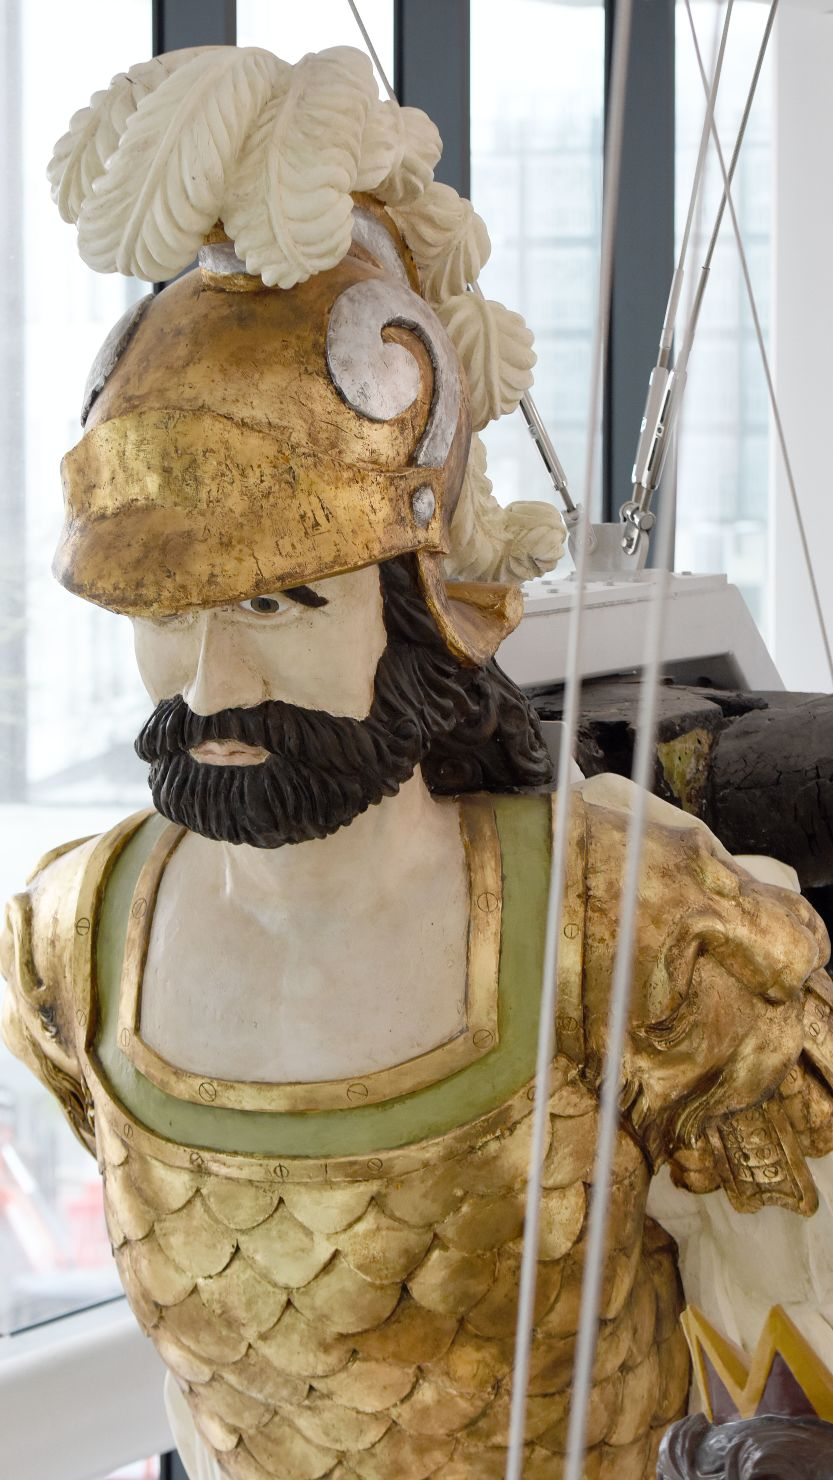 The Defiance figurehead on display at The Box in Plymouth